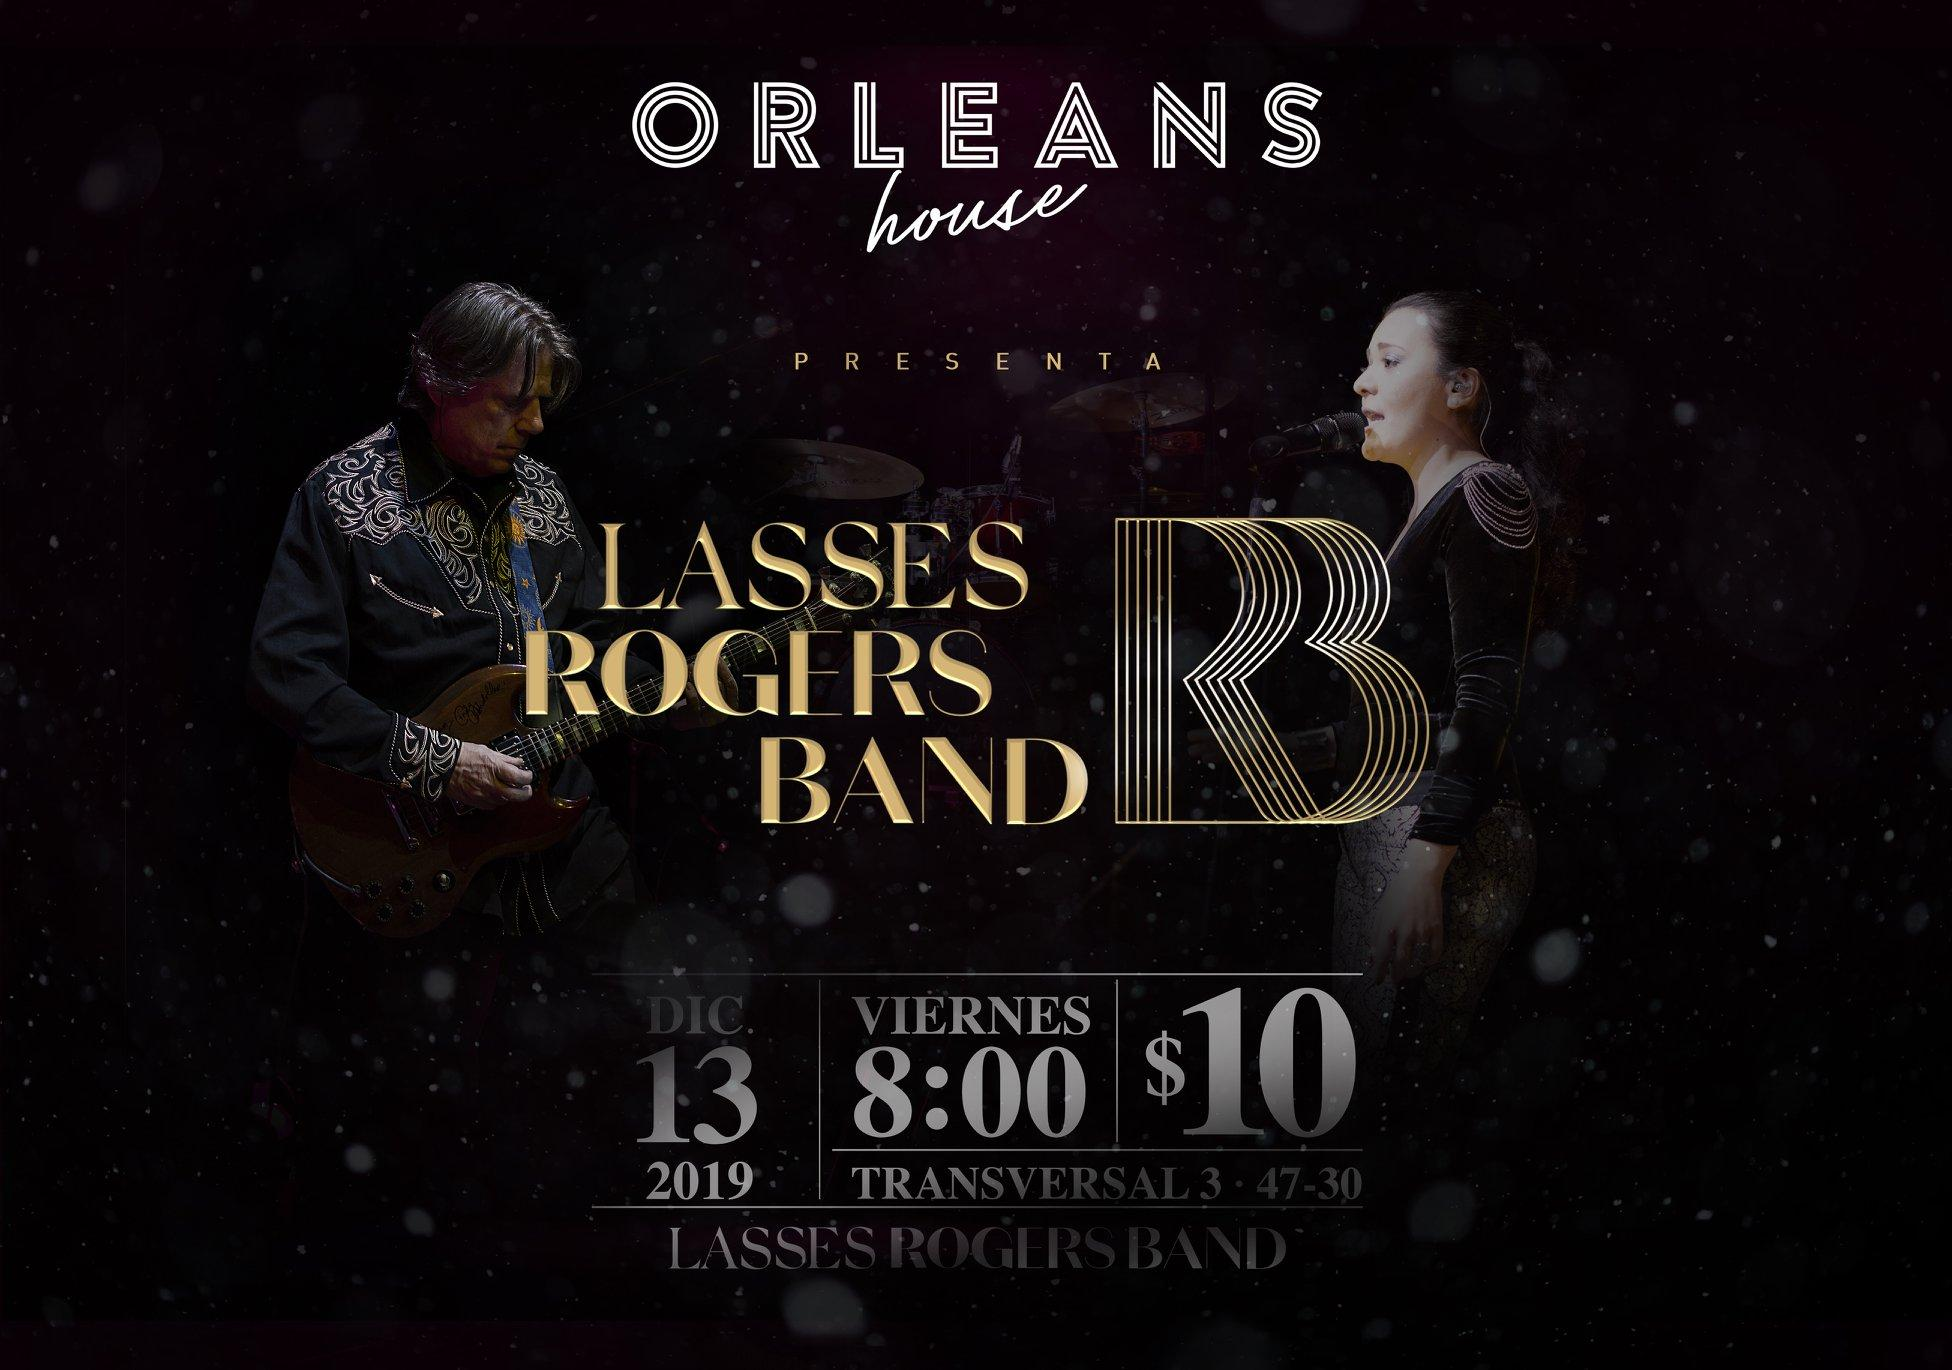 Orleans House presenta Lasses Rogers Band